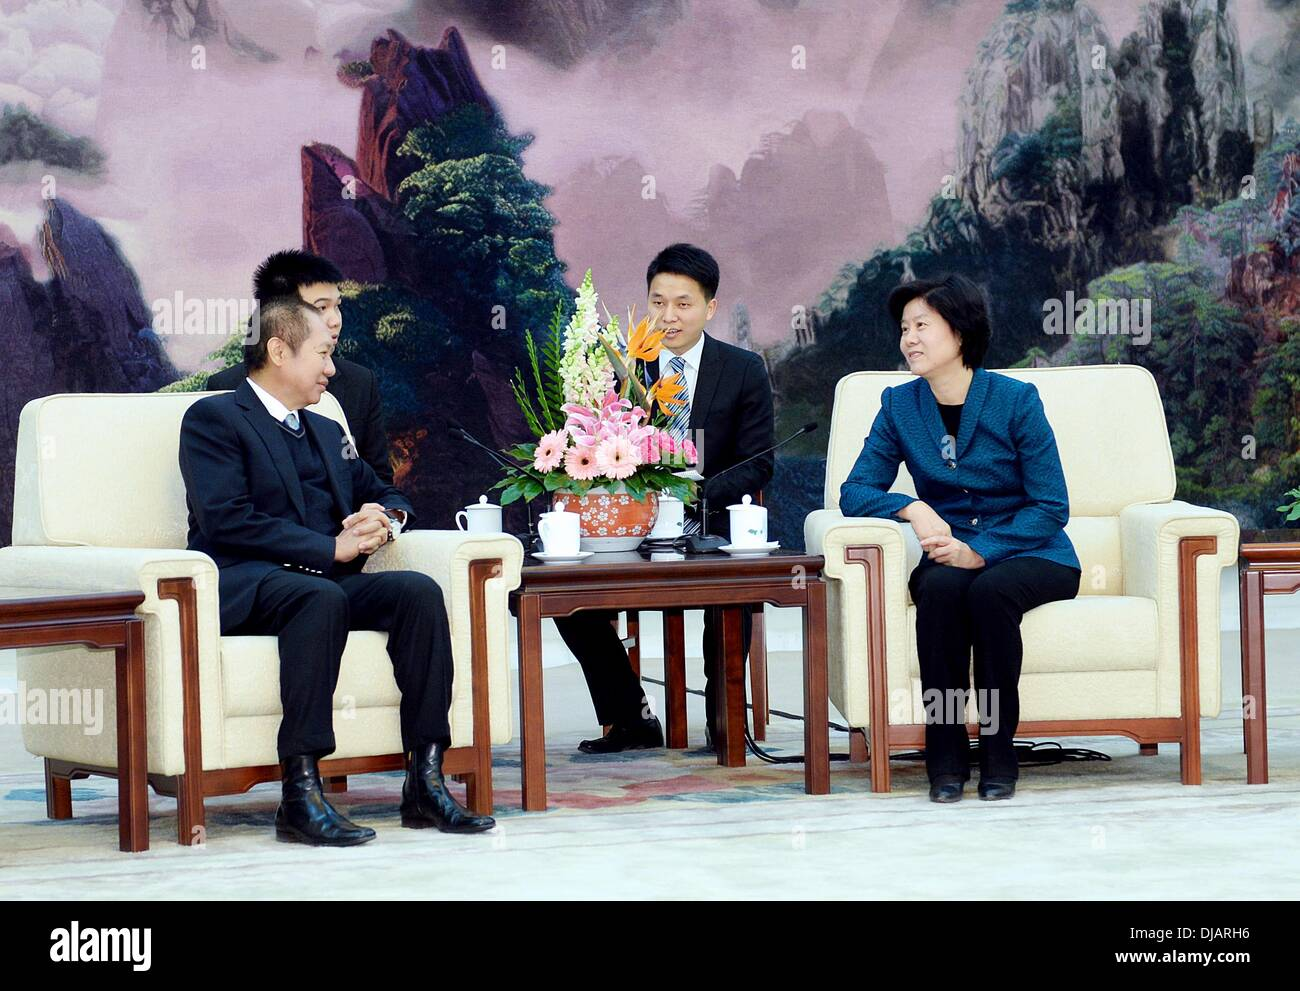 Beijing, China. 26th Nov, 2013. Shen Yueyue (R), vice chairwoman of the Standing Committee of the National People's Congress of China, meets with a Thai good-will delegation headed by Bhokin Bhalakula, president of the Thai-Chinese Culture and Economic Association, in Beijing, capital of China, Nov. 26, 2013. Credit:  Li Tao/Xinhua/Alamy Live News - Stock Image